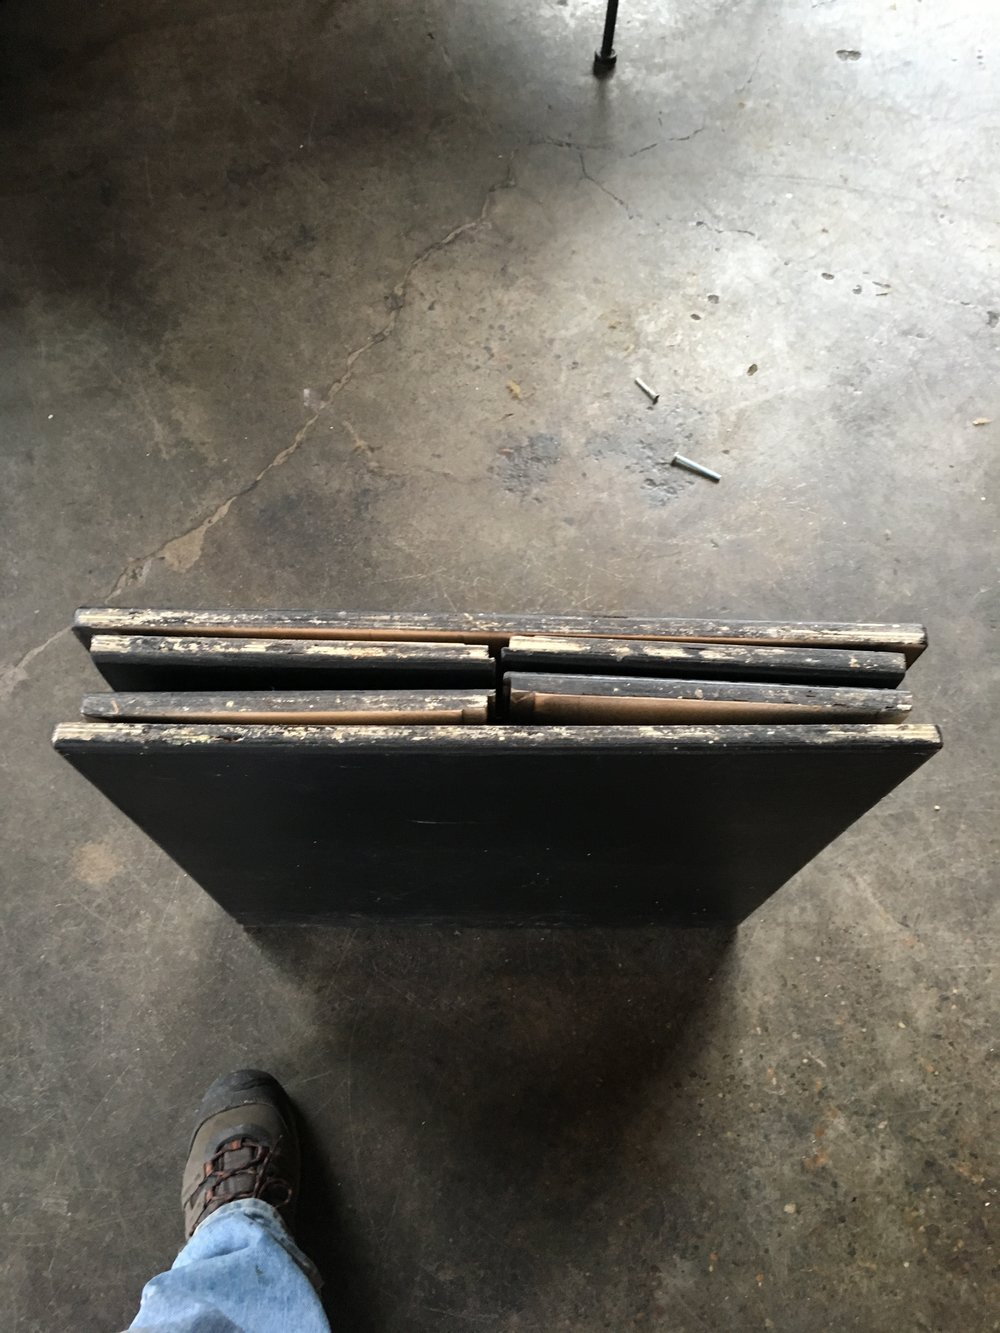 Table base completely collapsed